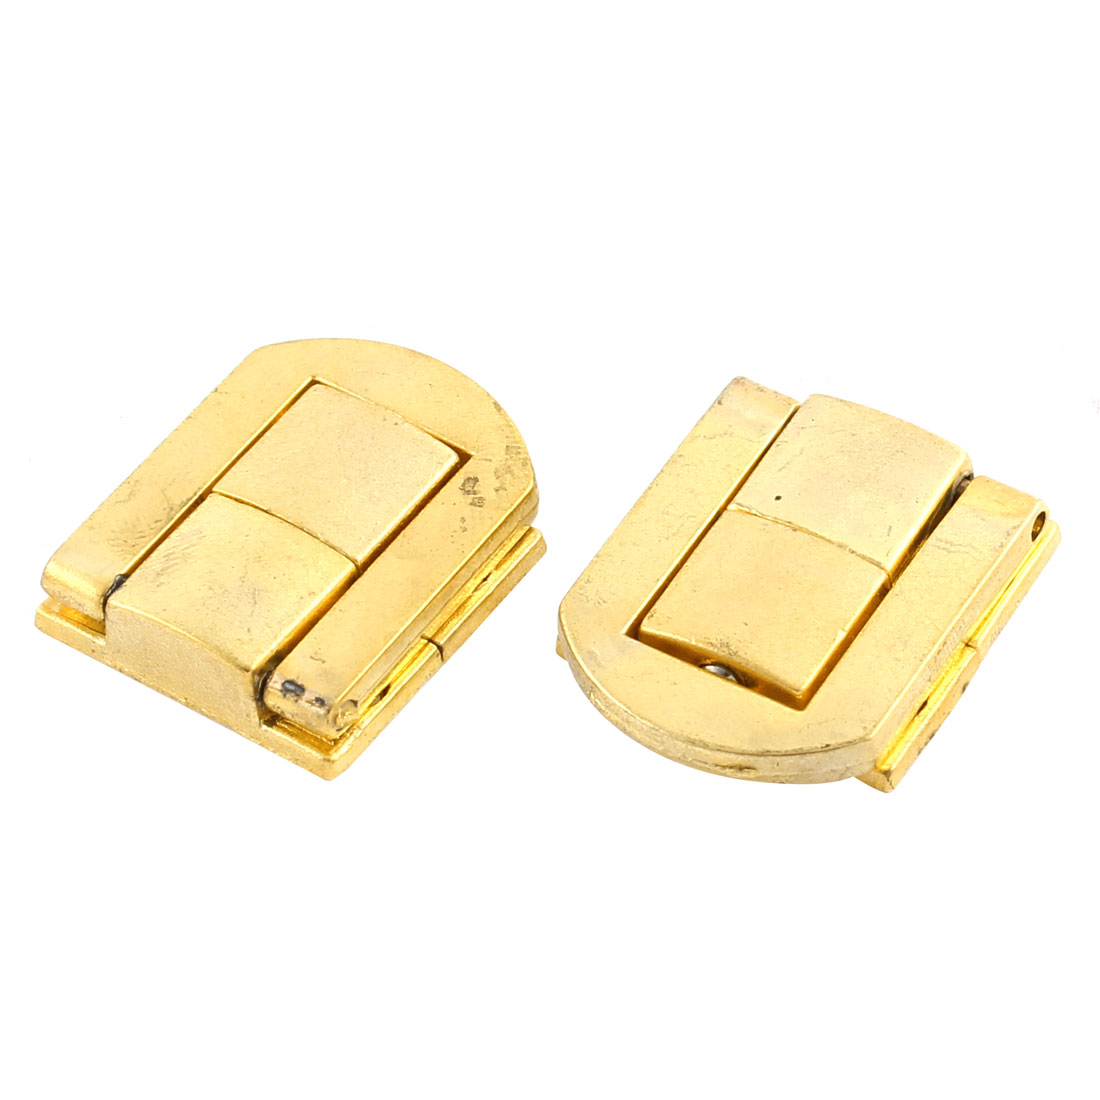 2pcs 25mmx21mm Gold Tone Zinc Alloy Suitcase Box Lid Hidden Hole Latch